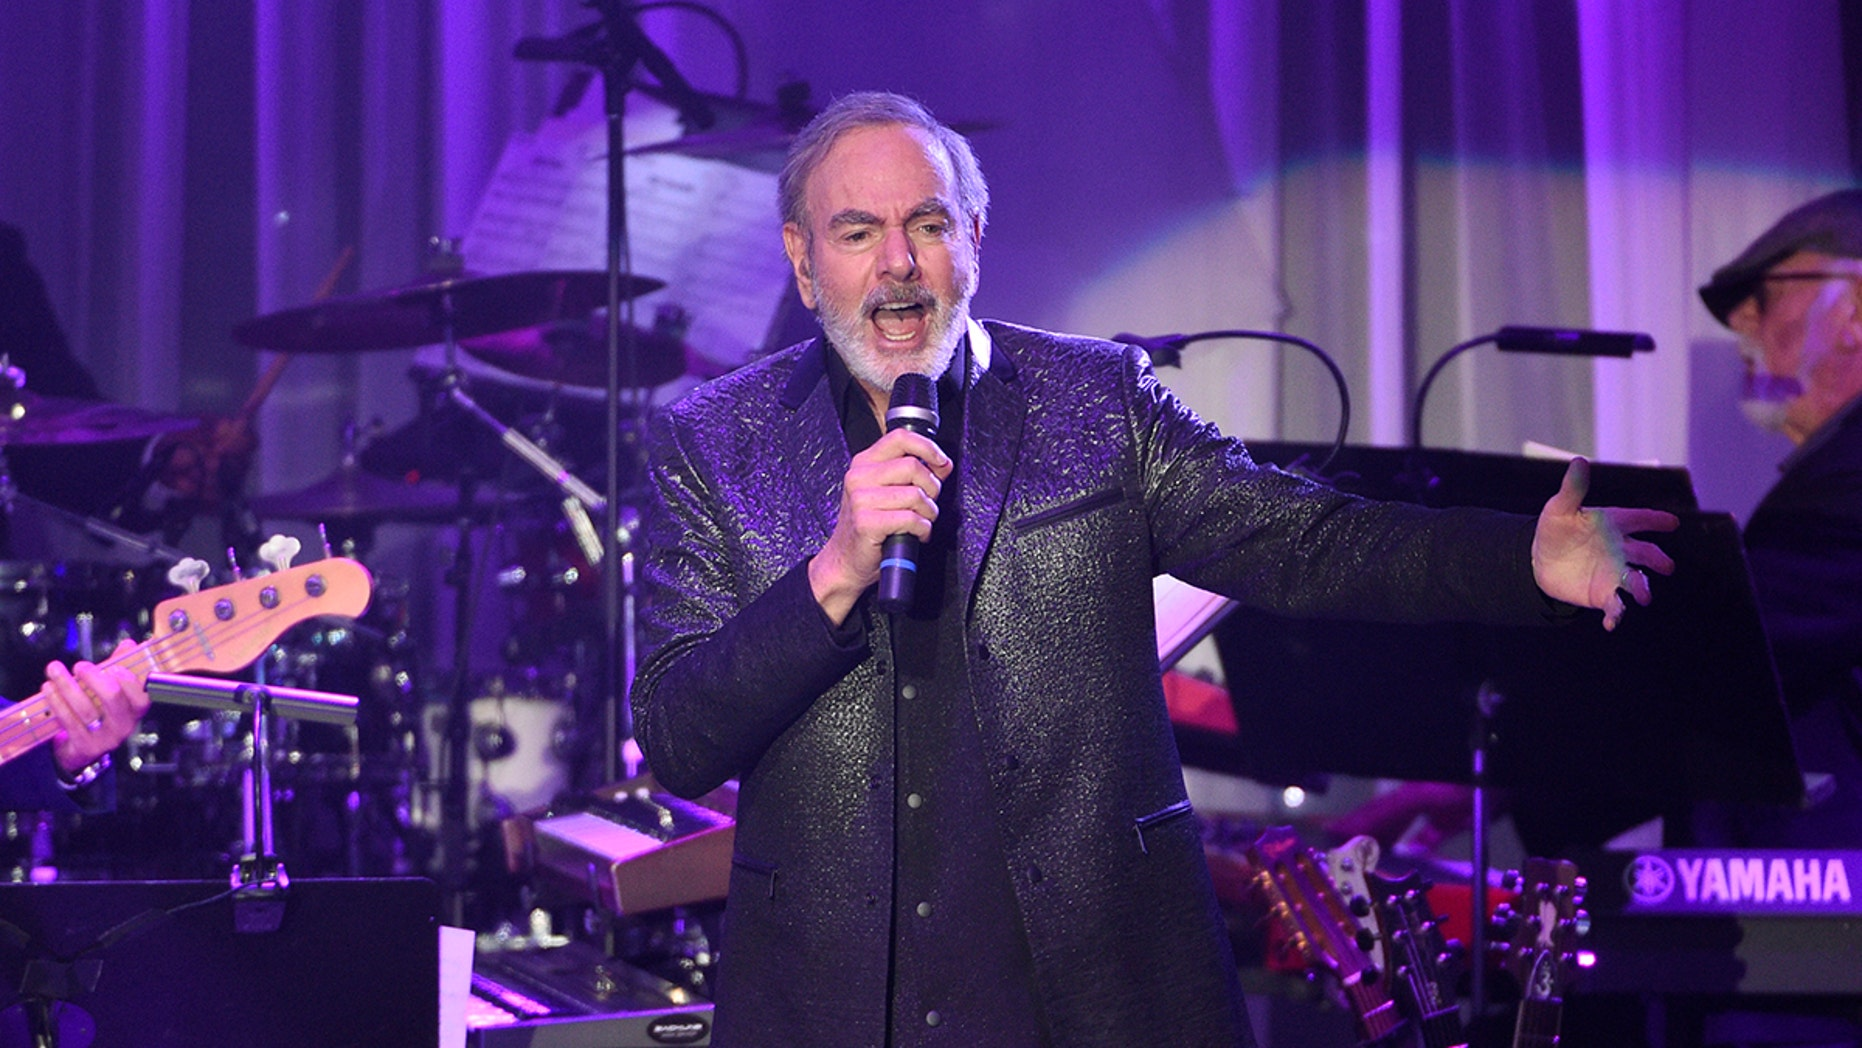 Neil Diamond, seen here in February 2017, has announced he'll retire from touring.